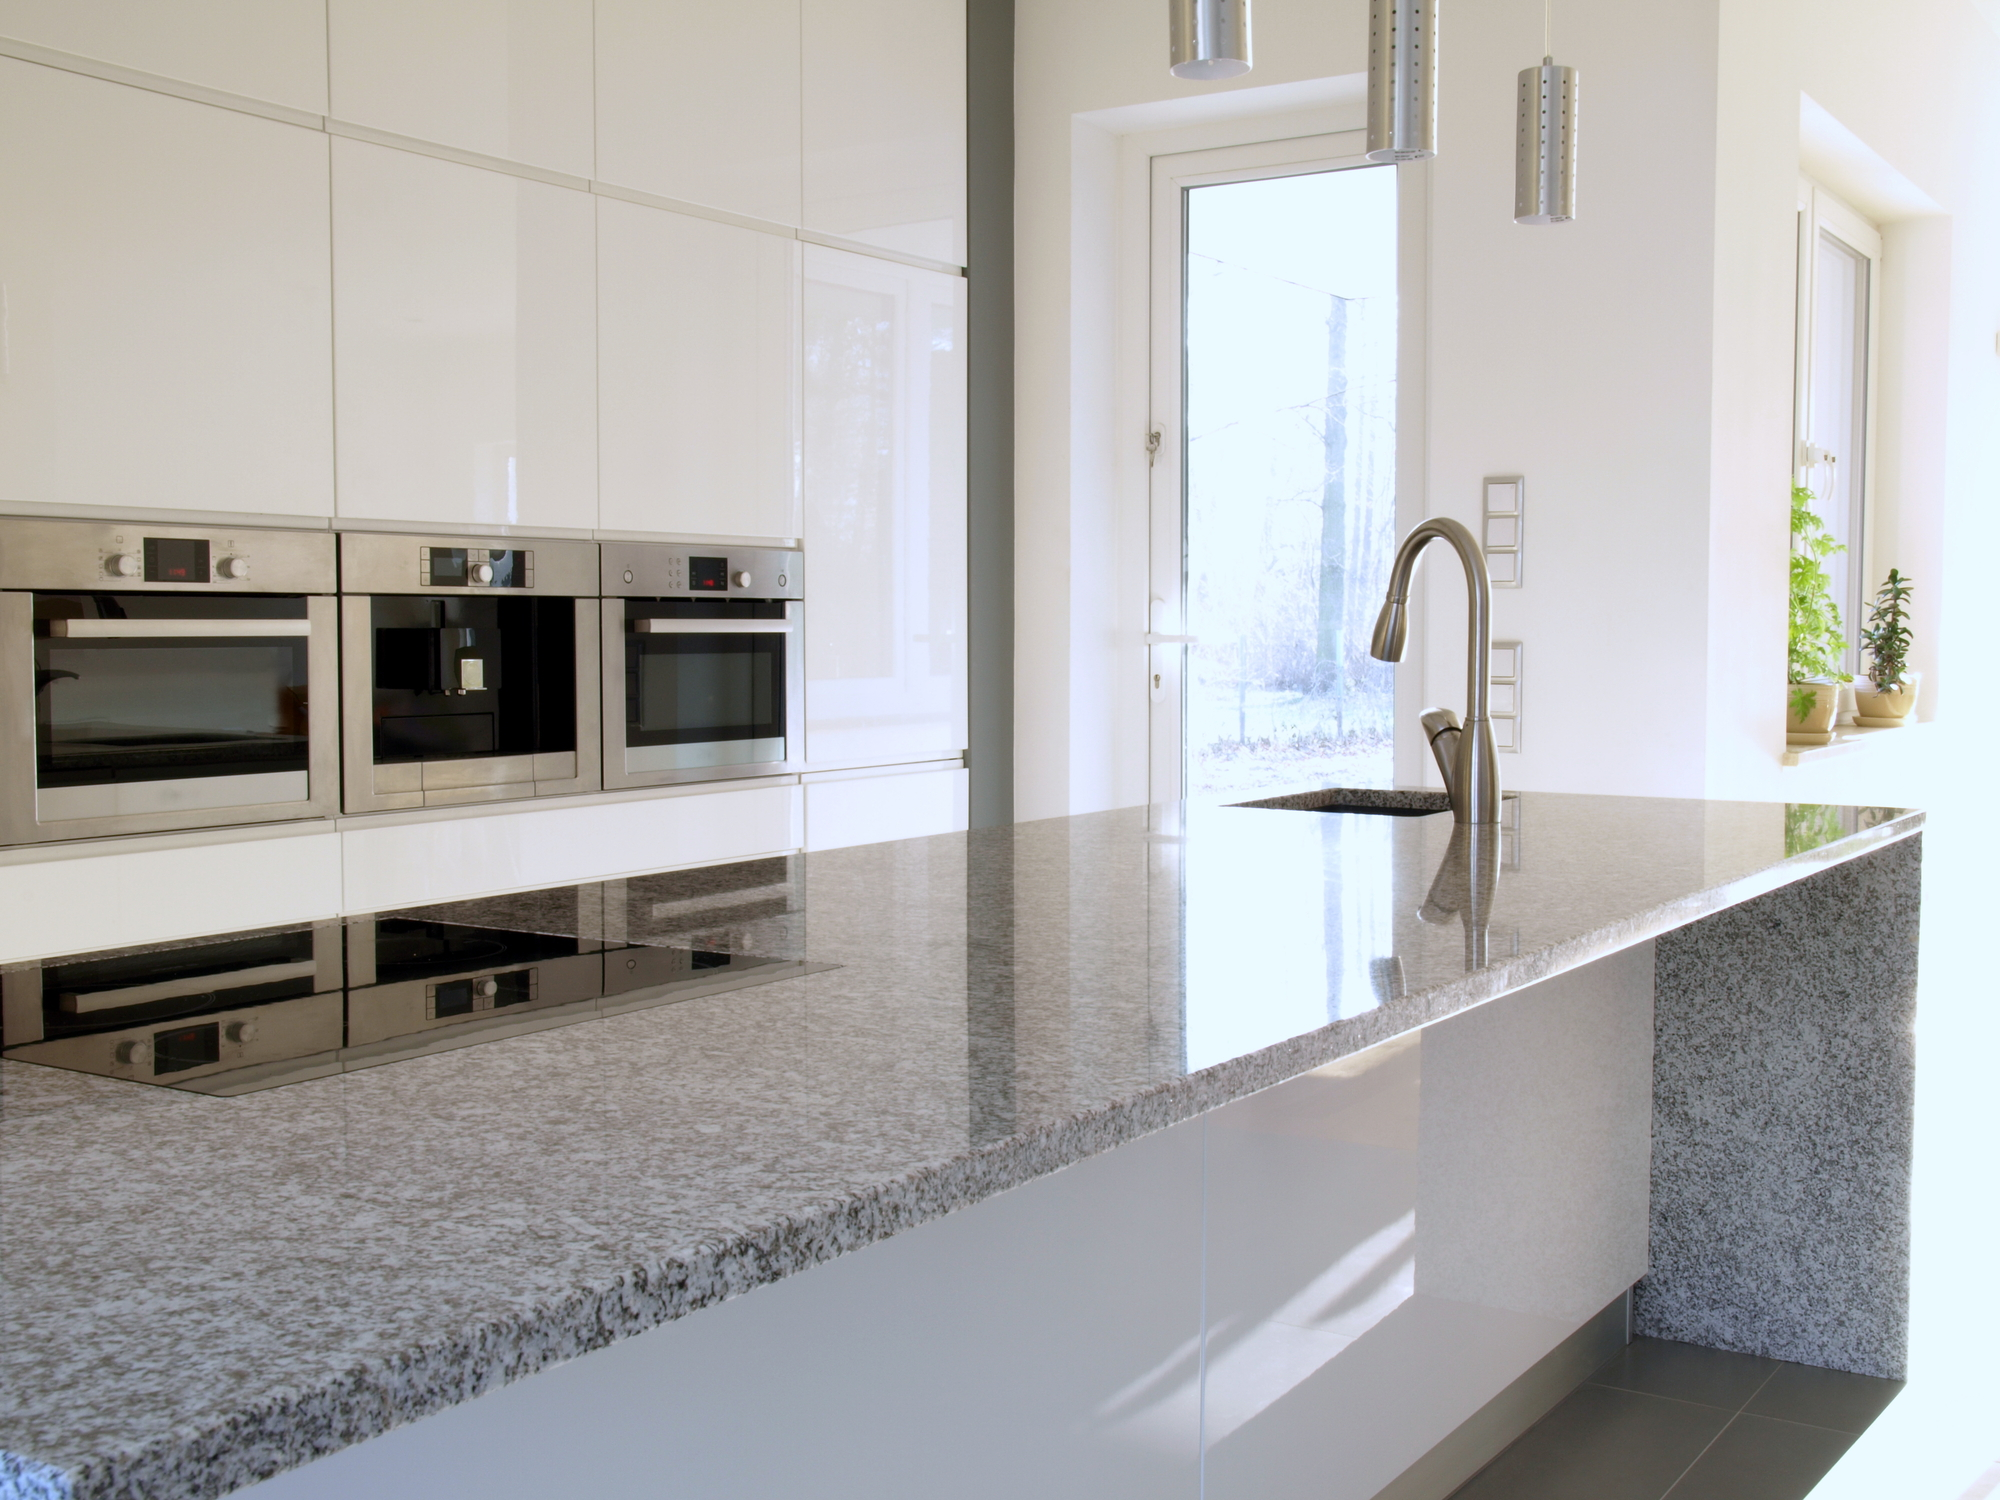 Selecting the Right Countertops for Your Kitchen Remodel